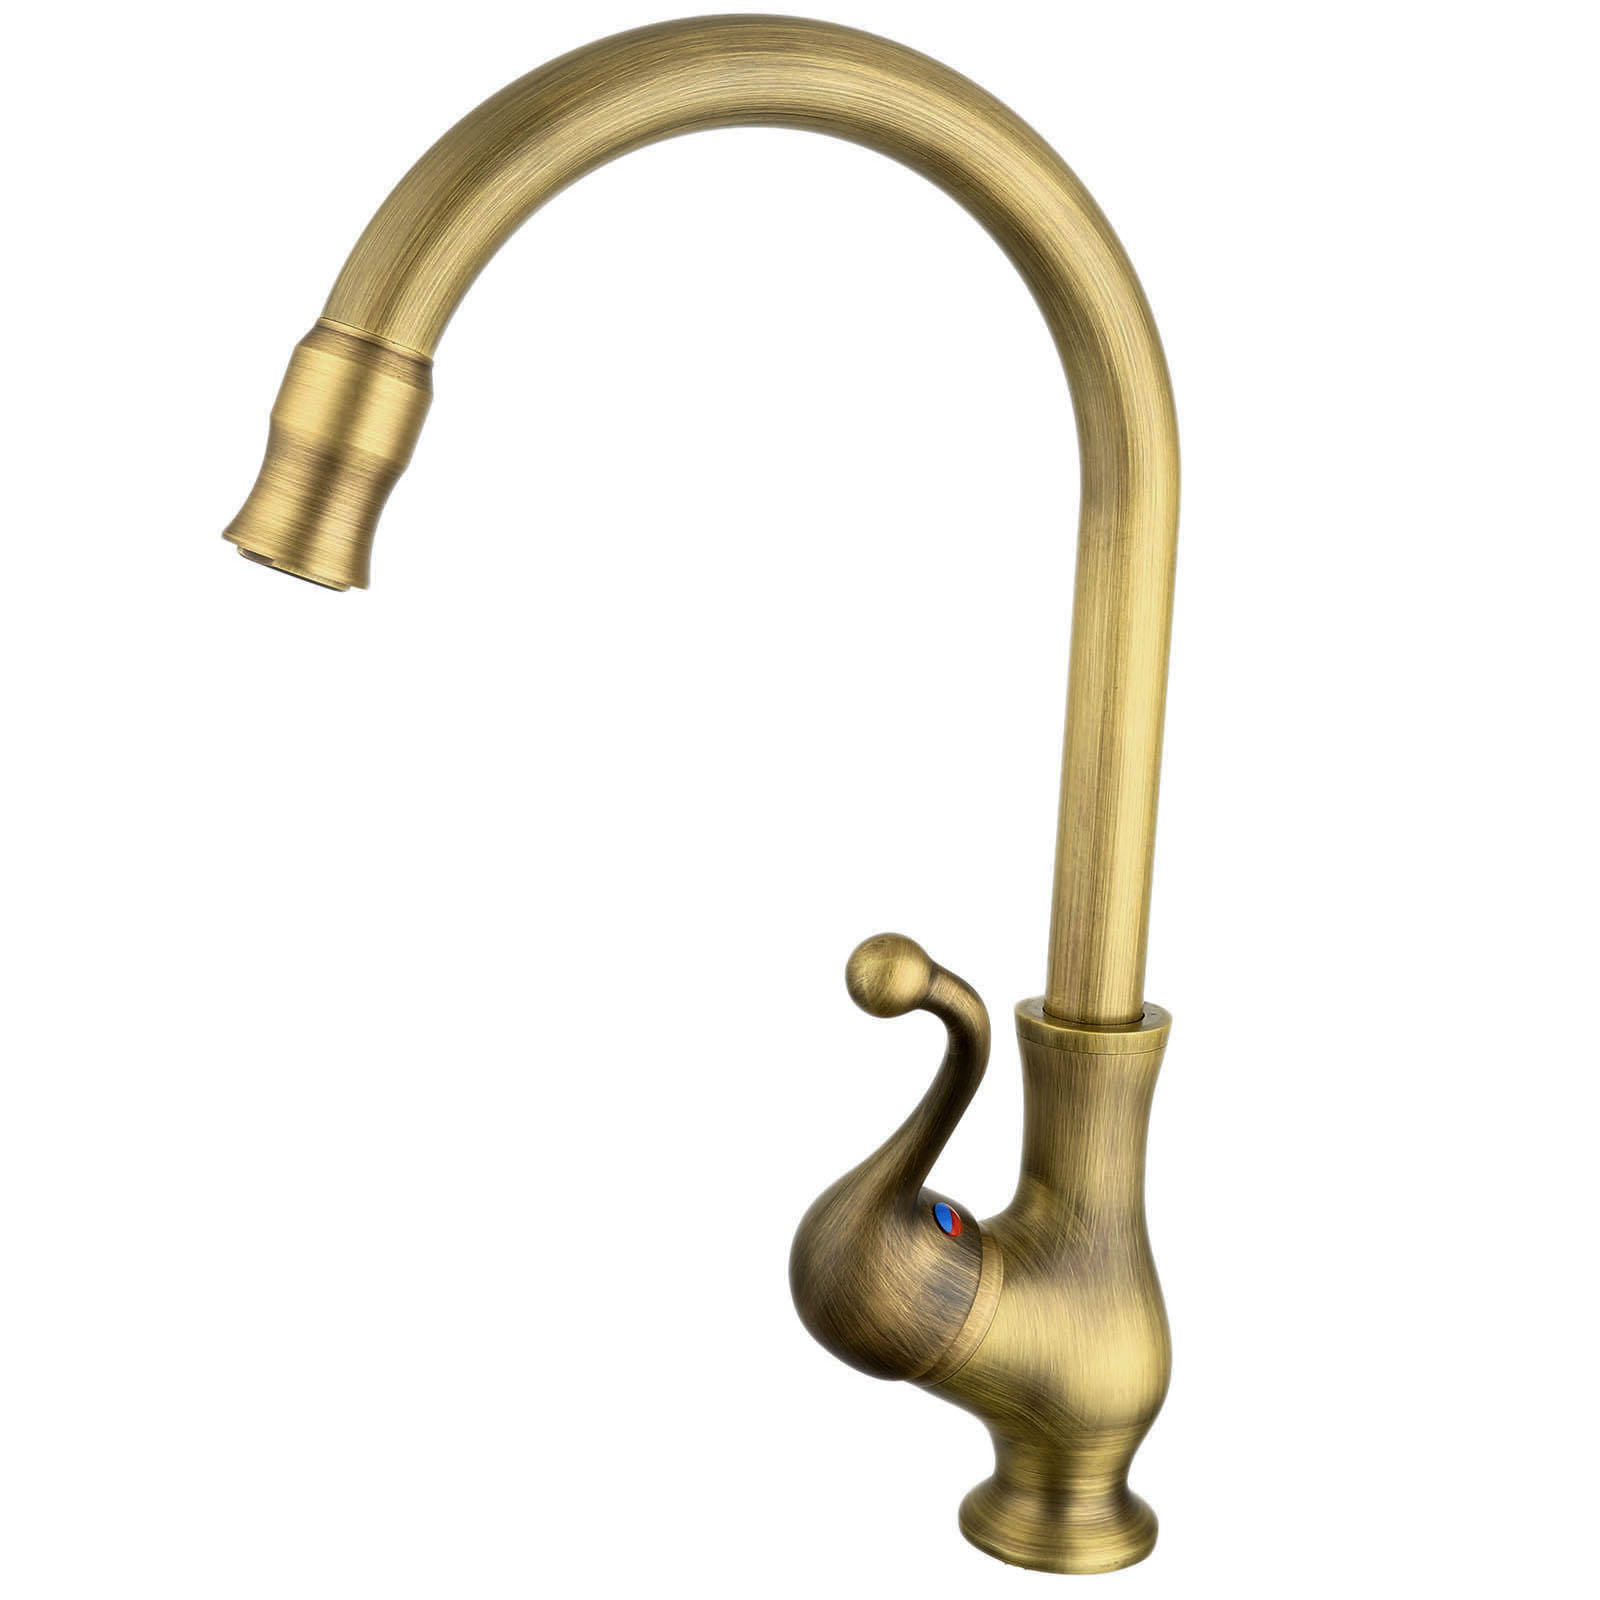 Antique Bronze Kitchen Faucet Single Handle Vessel Sink Mixer Tap Bathroom Basin Faucet Hot and Cold Water Tap Swivel Spout black oil rubbed brass single hole handle kitchen swivel spout vessel basin sink faucet hot cold mixer water tap anf060